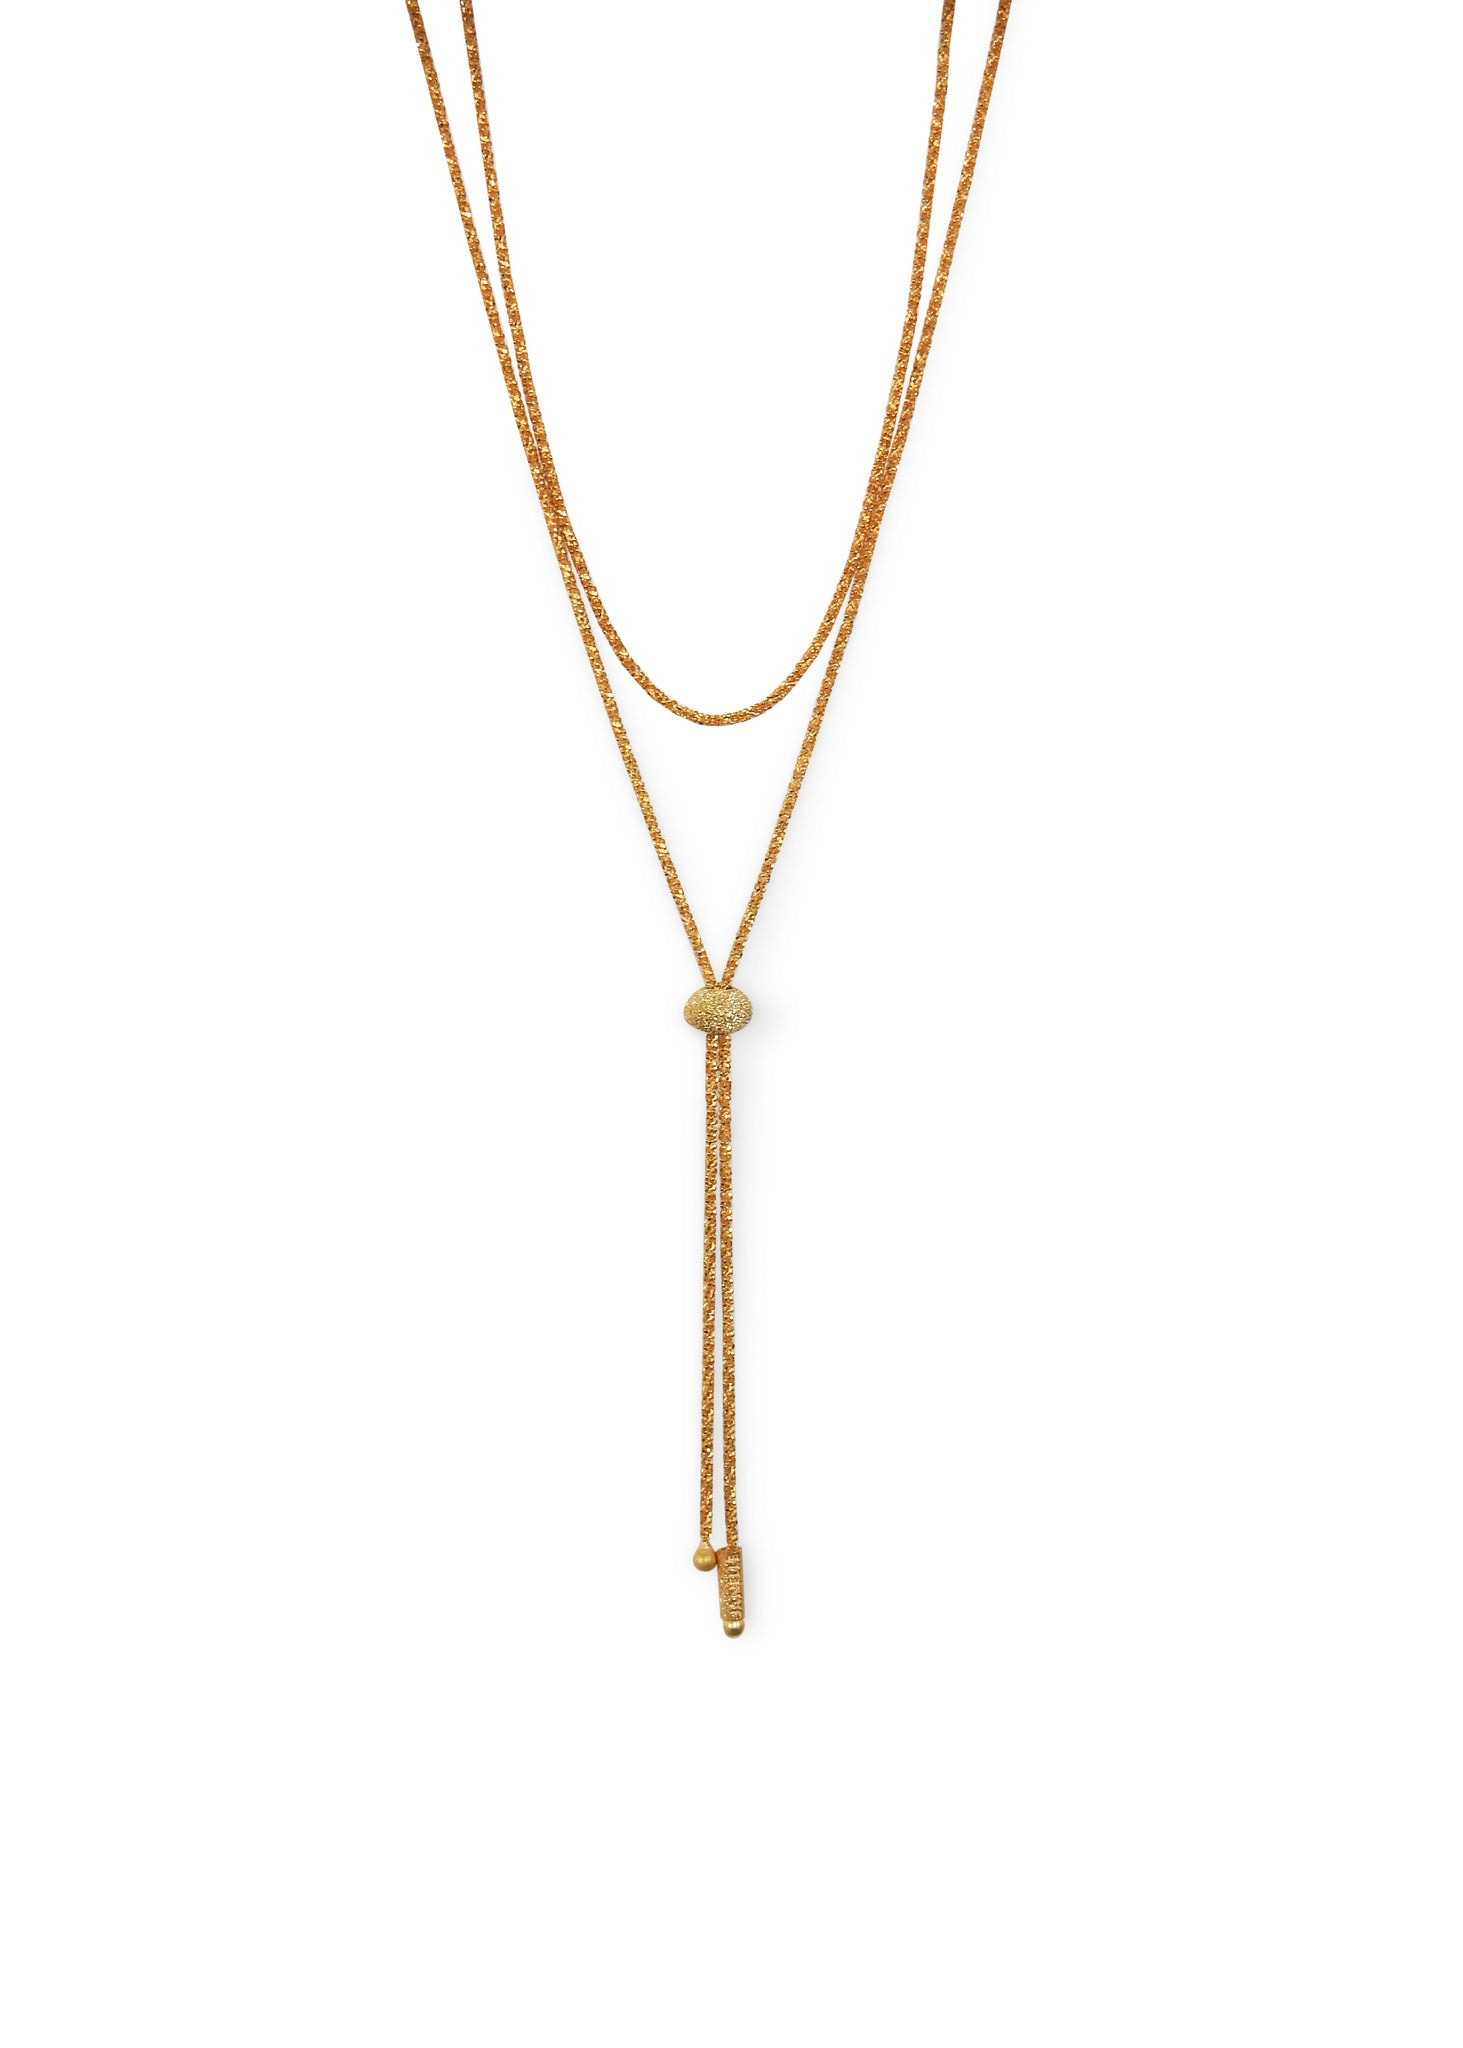 Janelle Khouri Sparkle Necklace, Gold